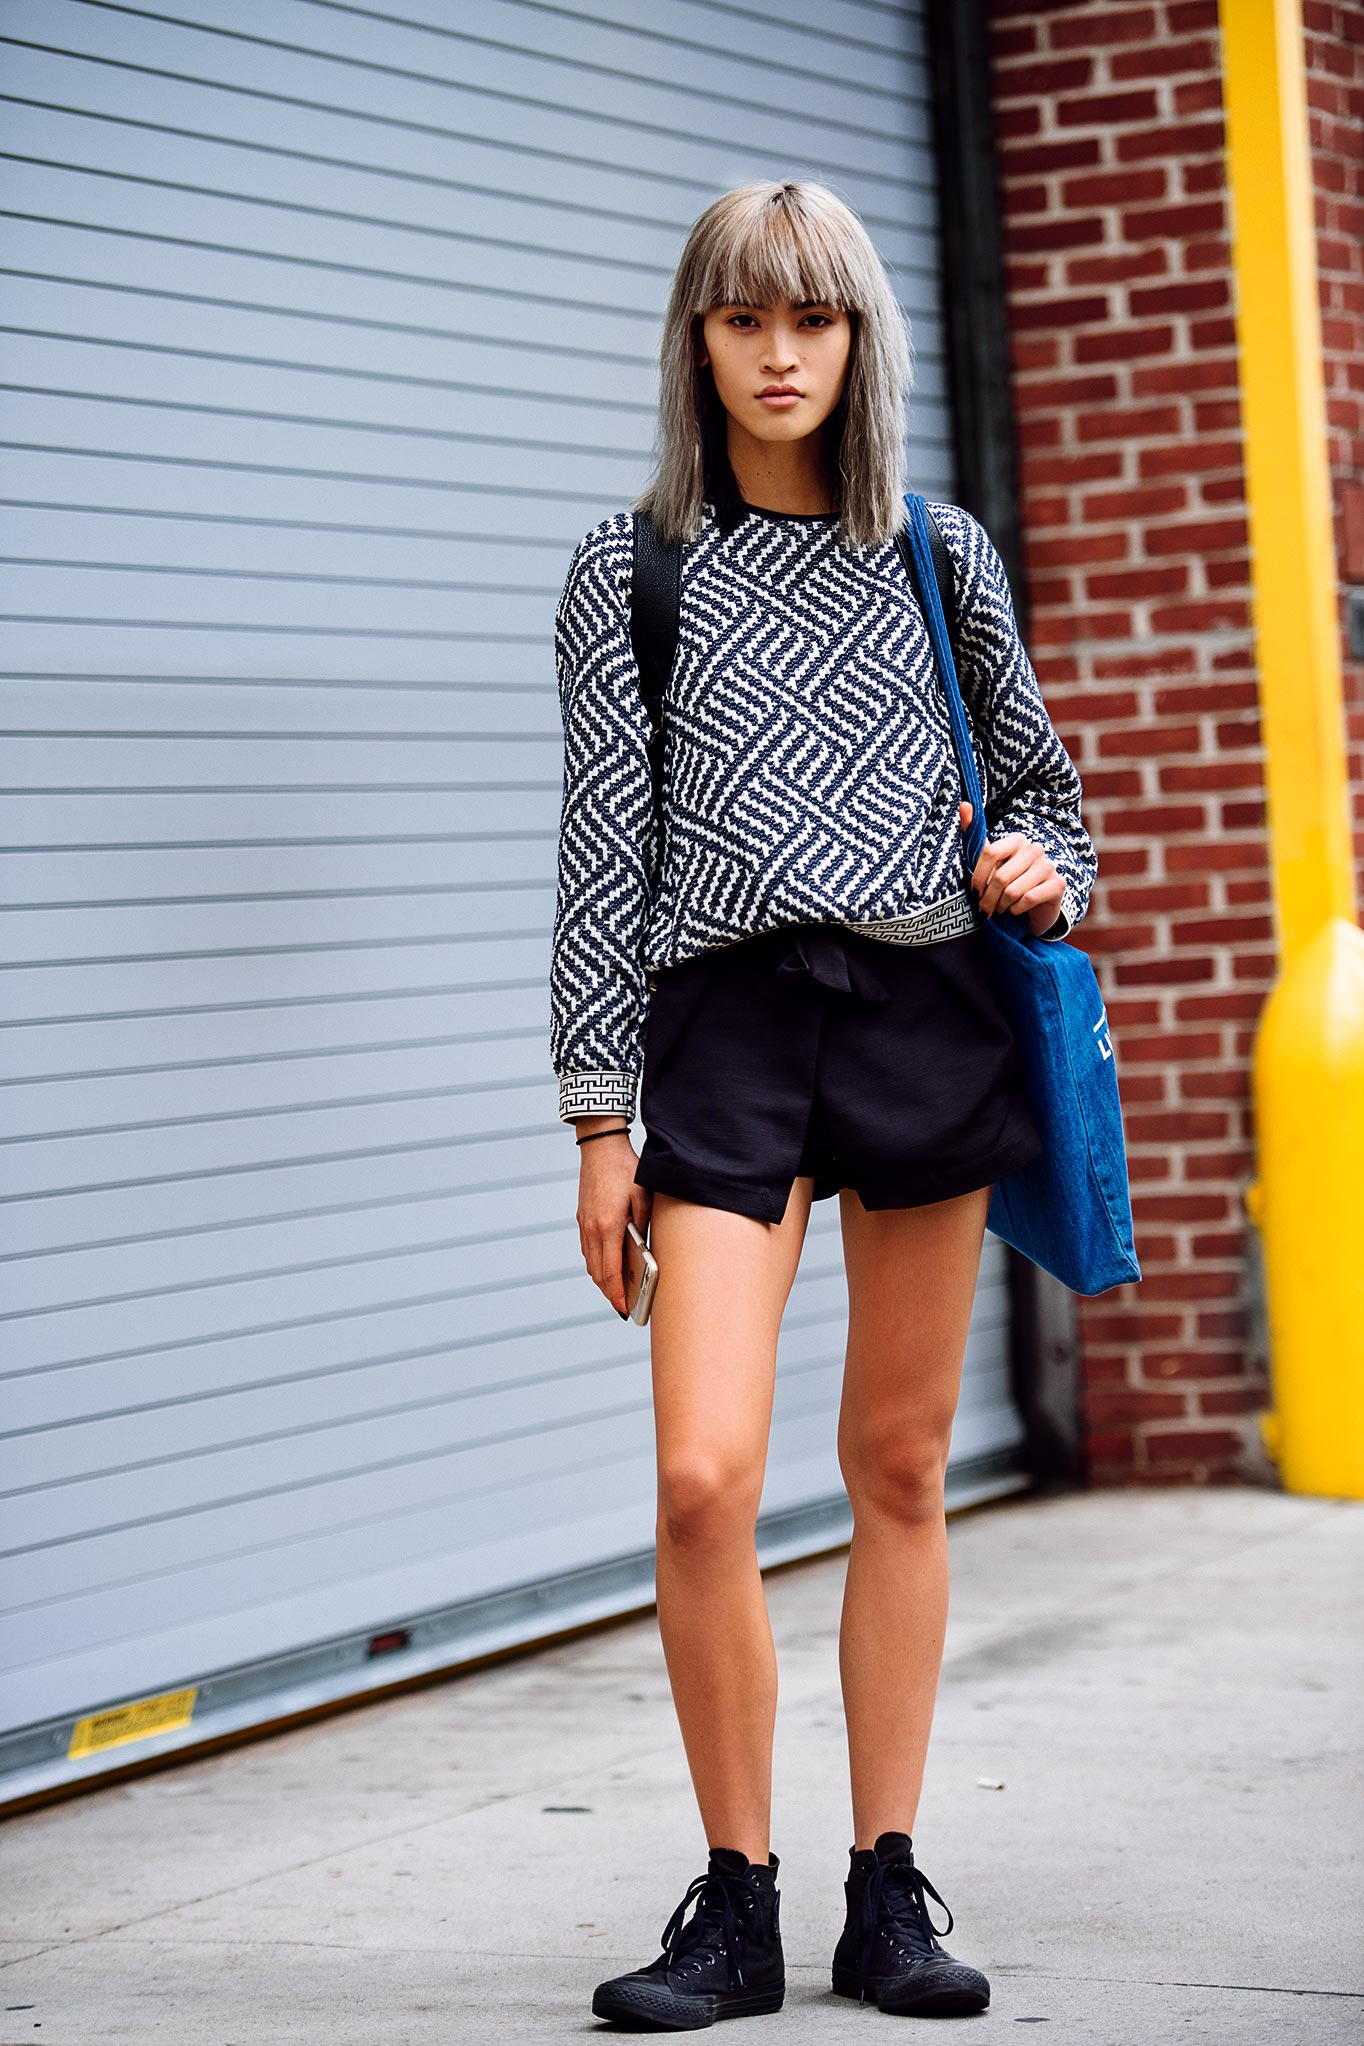 Marga Esquivel at New York Fashion Week Spring/Summer